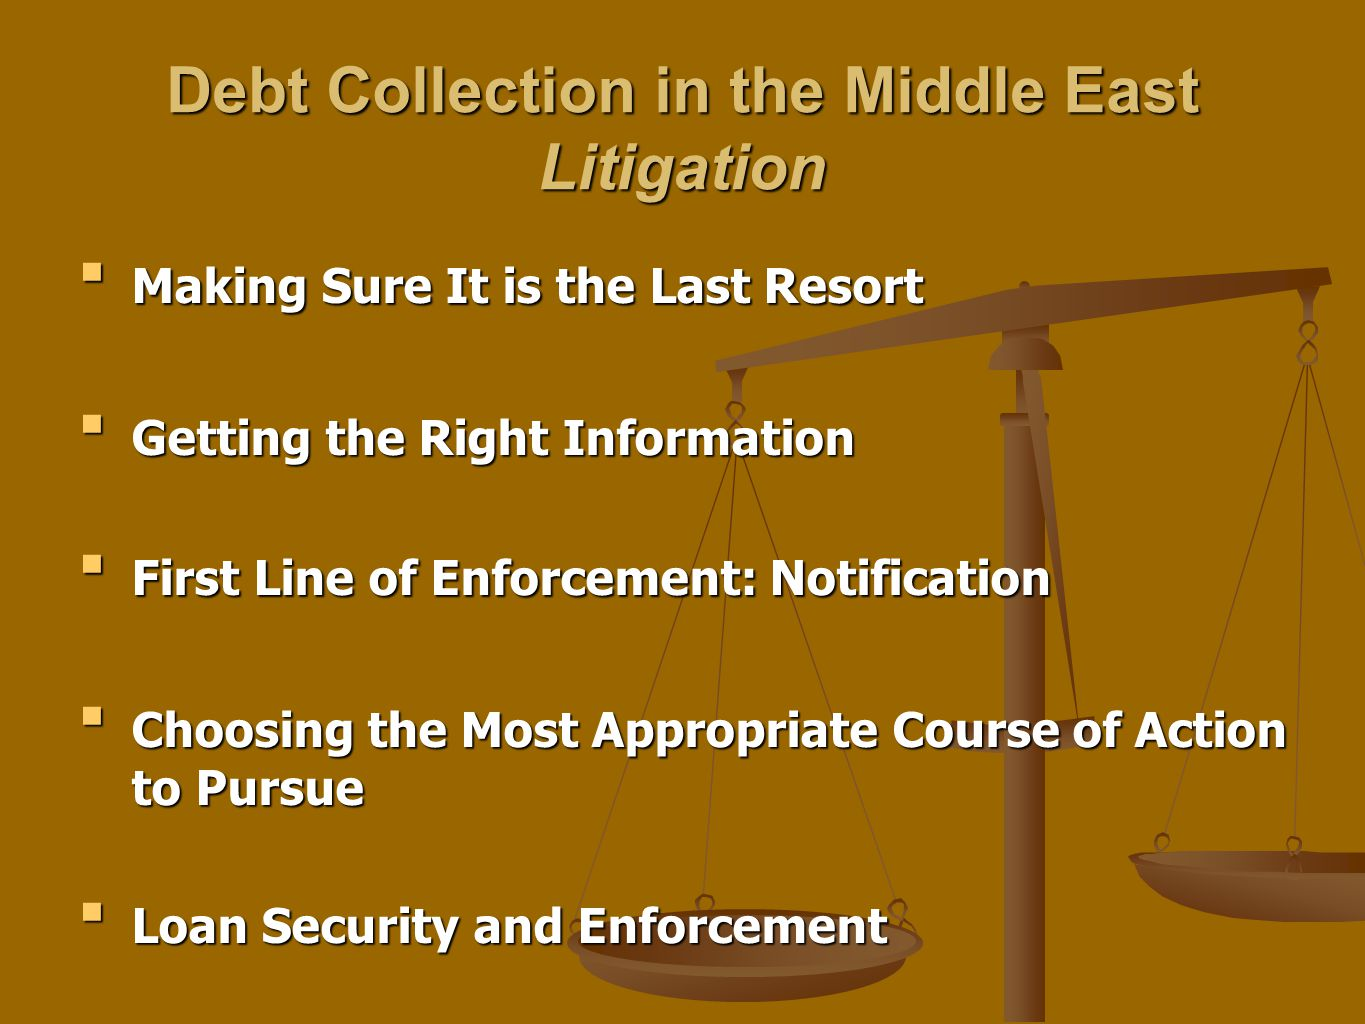 Debt Collection in the Middle East Litigation Making Sure It is the Last ResortMaking Sure It is the Last Resort Getting the Right InformationGetting the Right Information First Line of Enforcement: NotificationFirst Line of Enforcement: Notification Choosing the Most Appropriate Course of Action to PursueChoosing the Most Appropriate Course of Action to Pursue Loan Security and EnforcementLoan Security and Enforcement